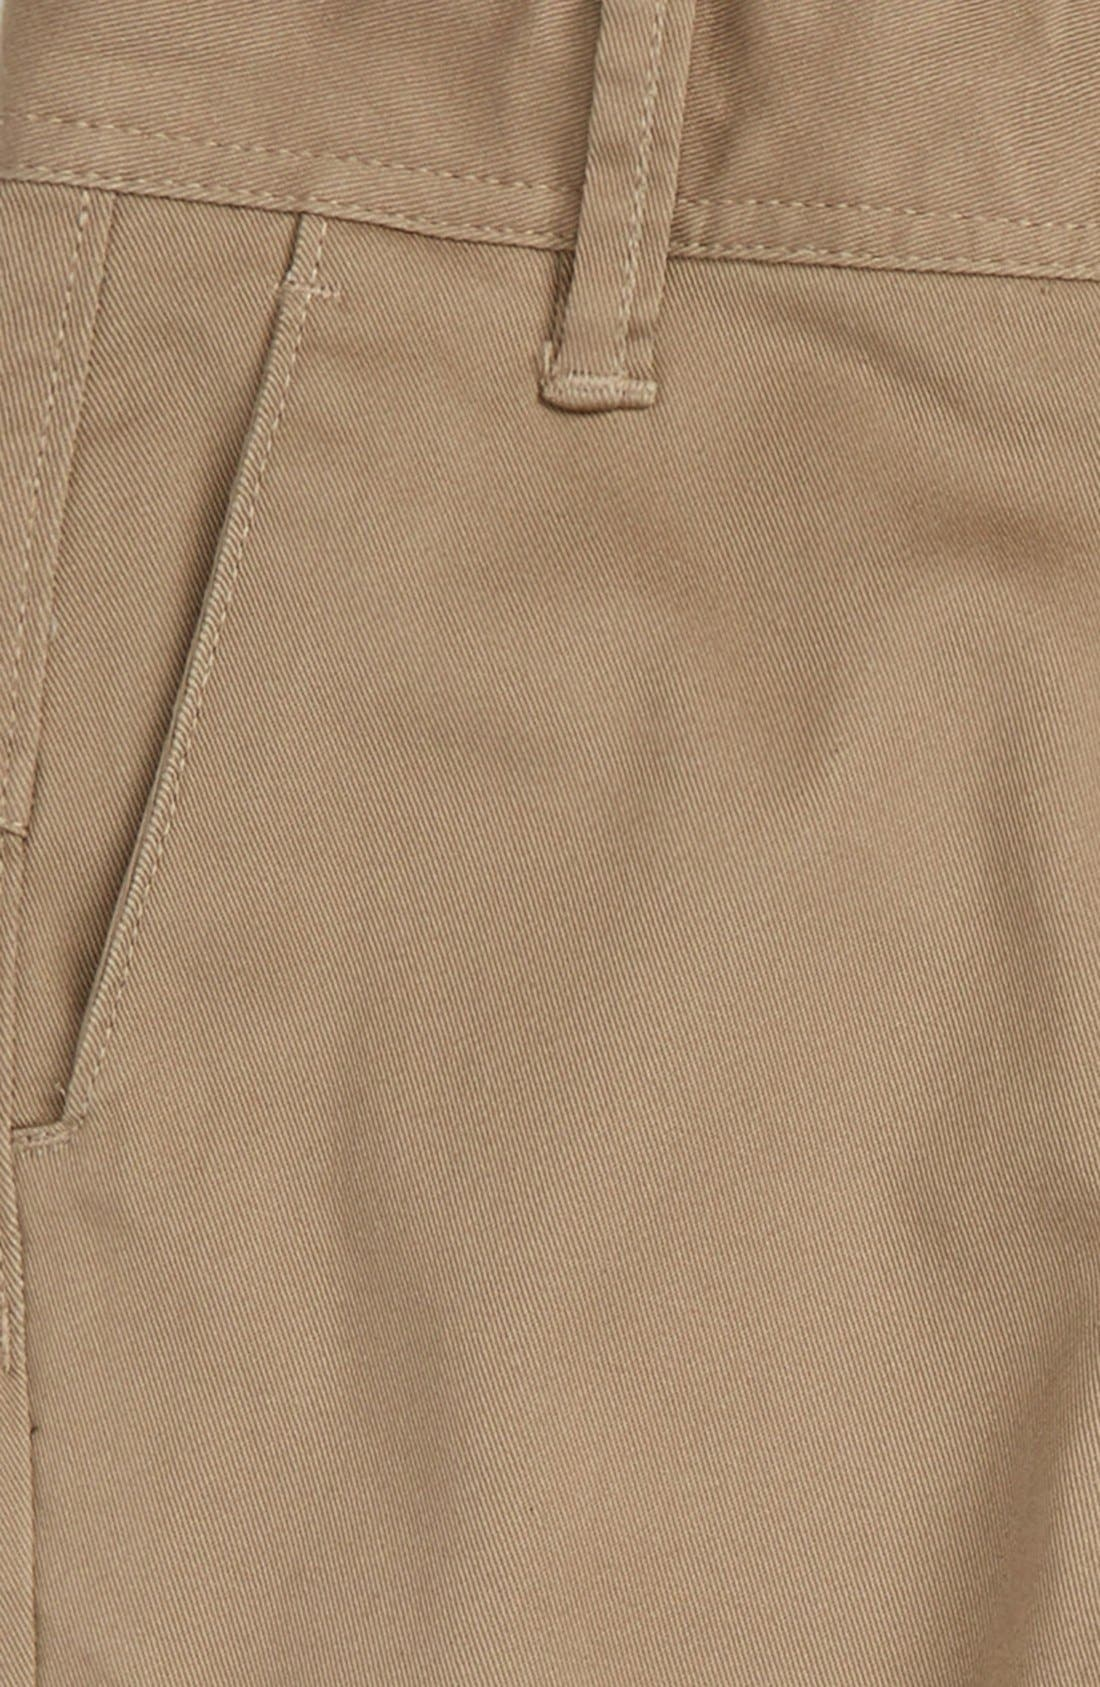 Modern Stretch Chinos,                             Alternate thumbnail 2, color,                             254